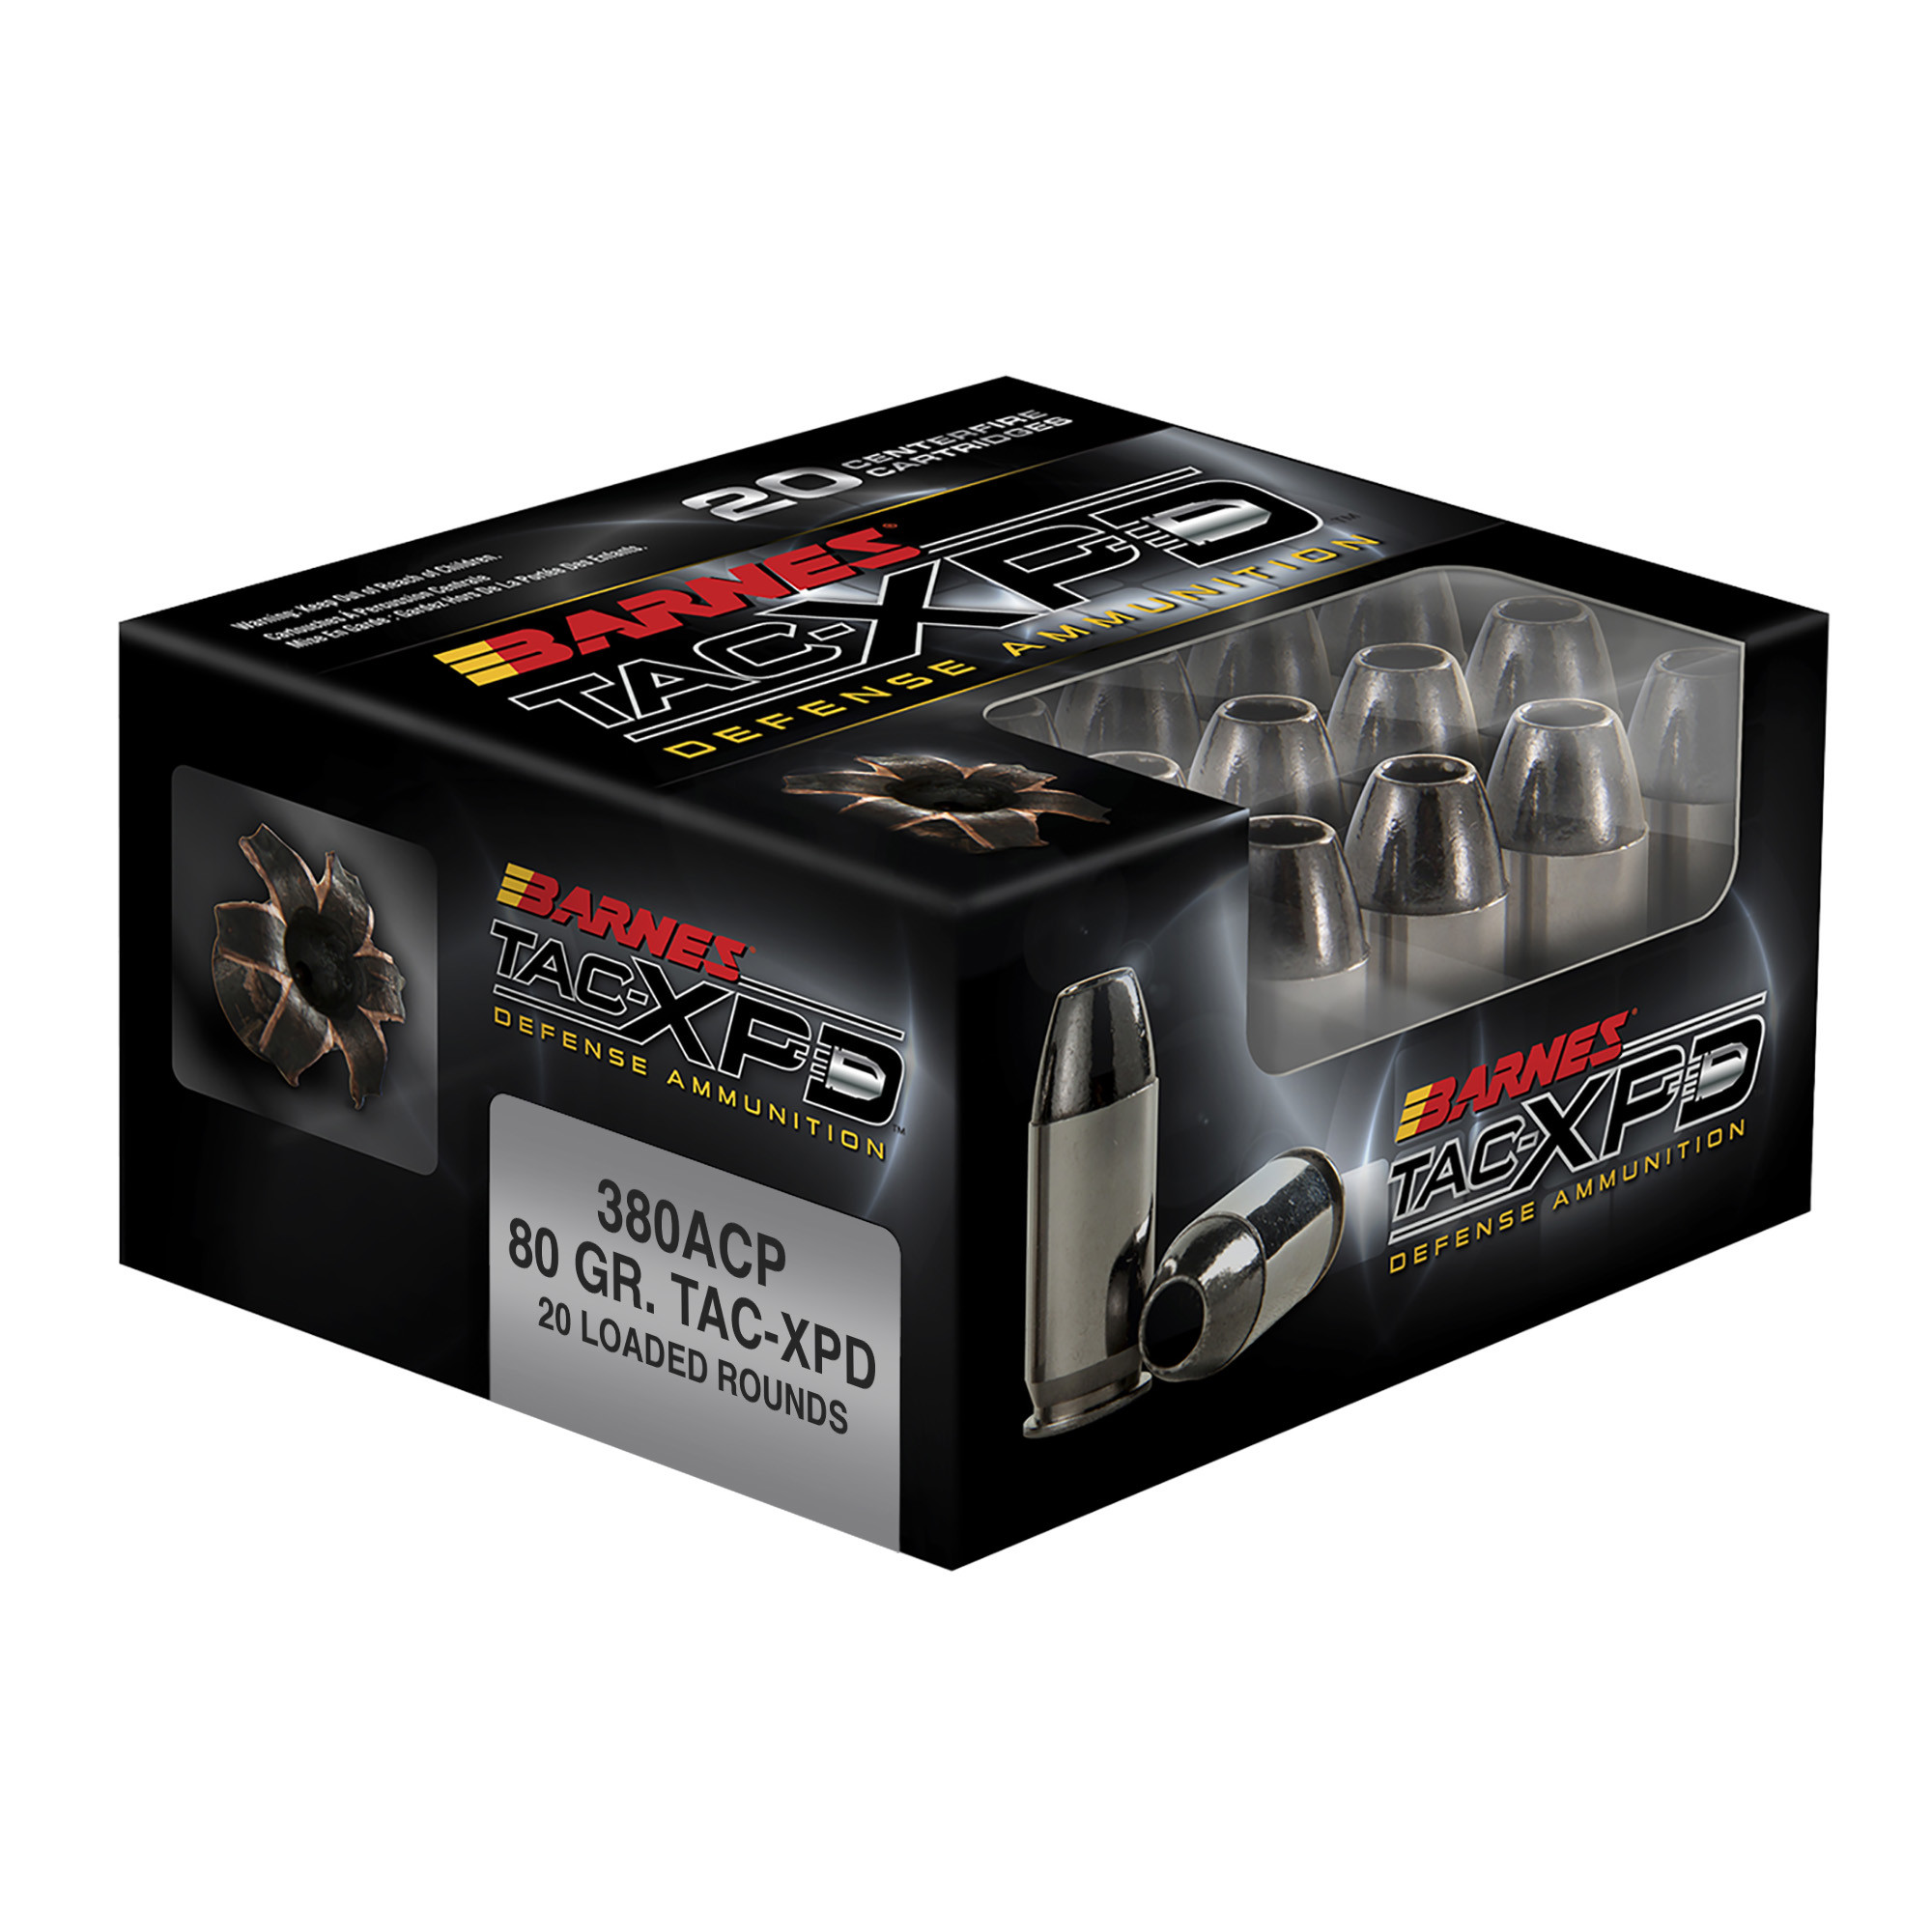 Barnes TAC-XPD Ammunition 380 Auto (ACP) 80 Grain TAC-XP Solid Hollow Point Lead Free Per 20